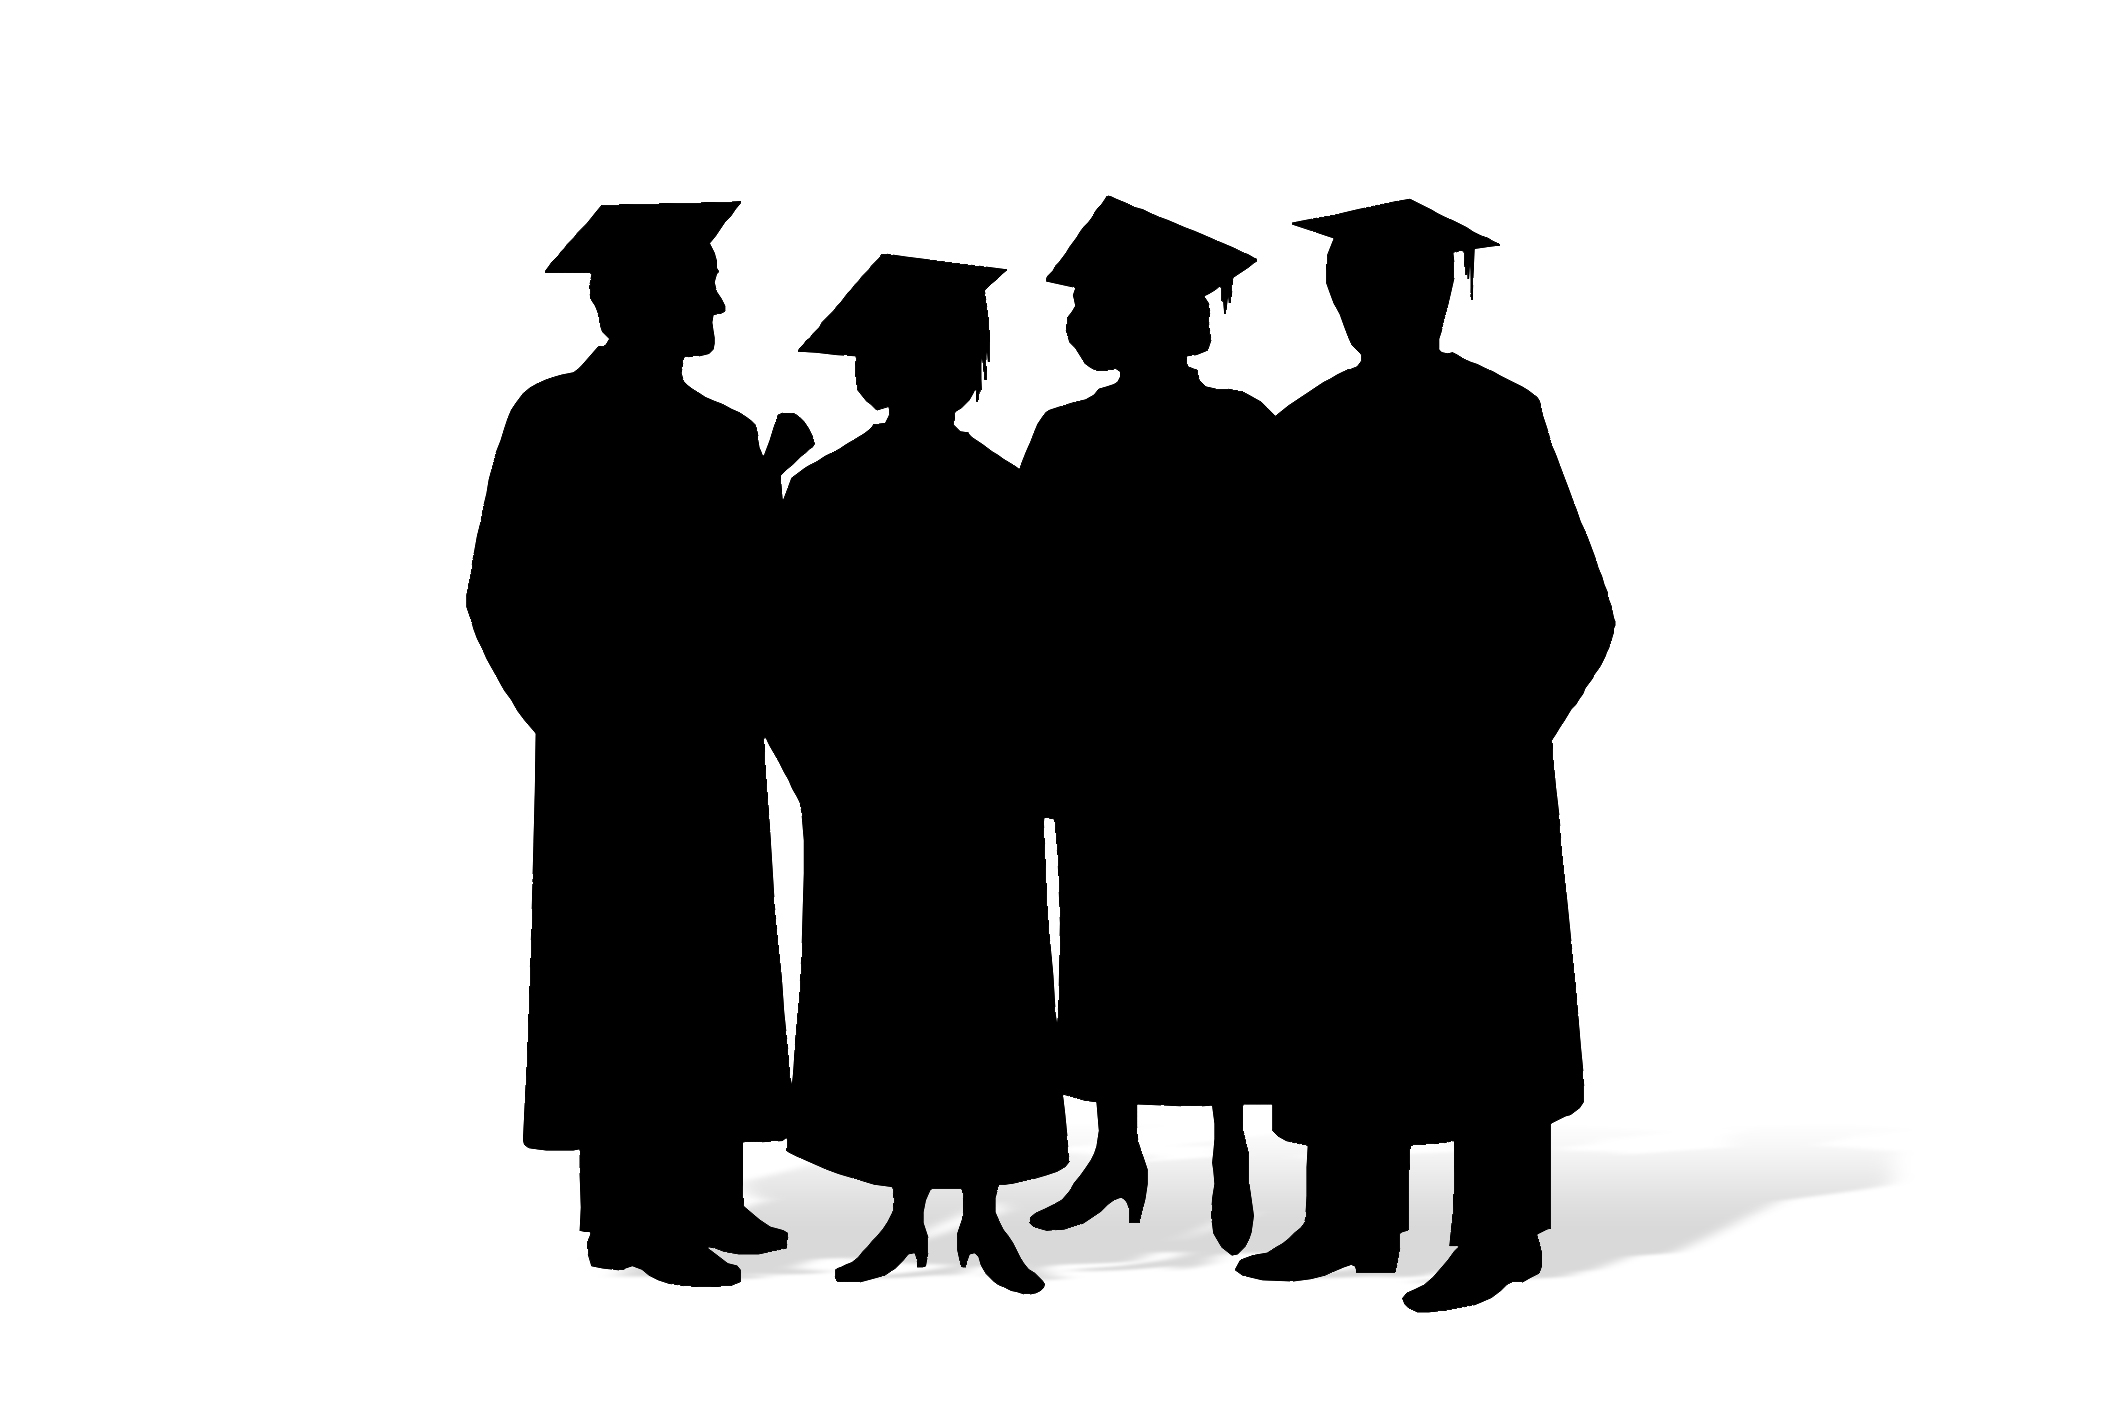 From student to alumni: Sustaining support after graduation